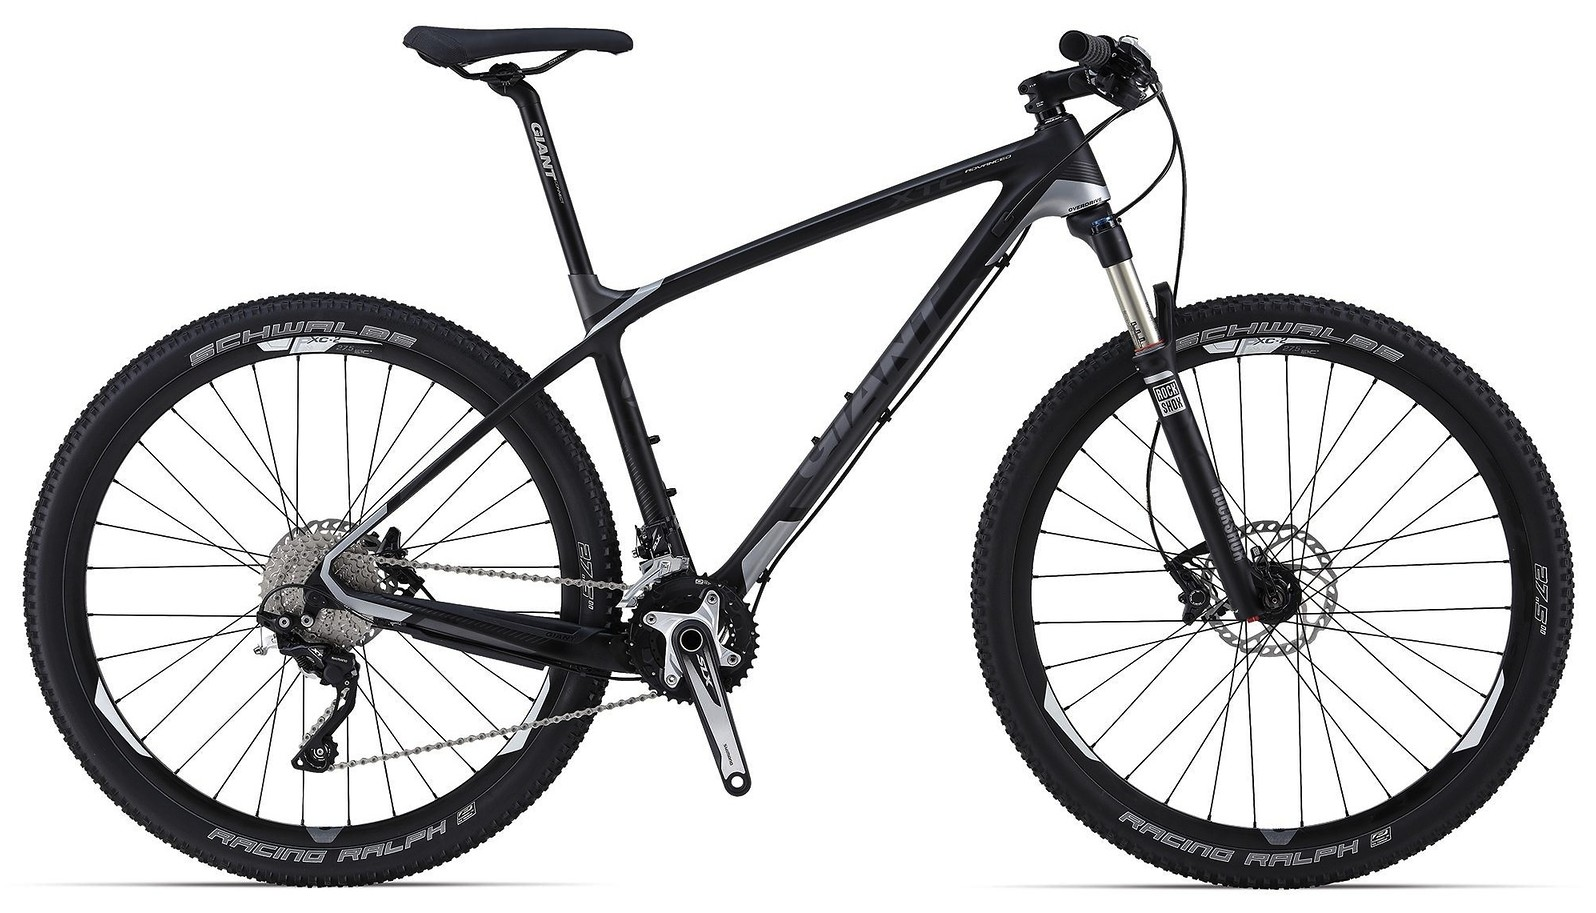 2014 Giant Xtc Advanced 27 5 3 Bike Reviews Comparisons